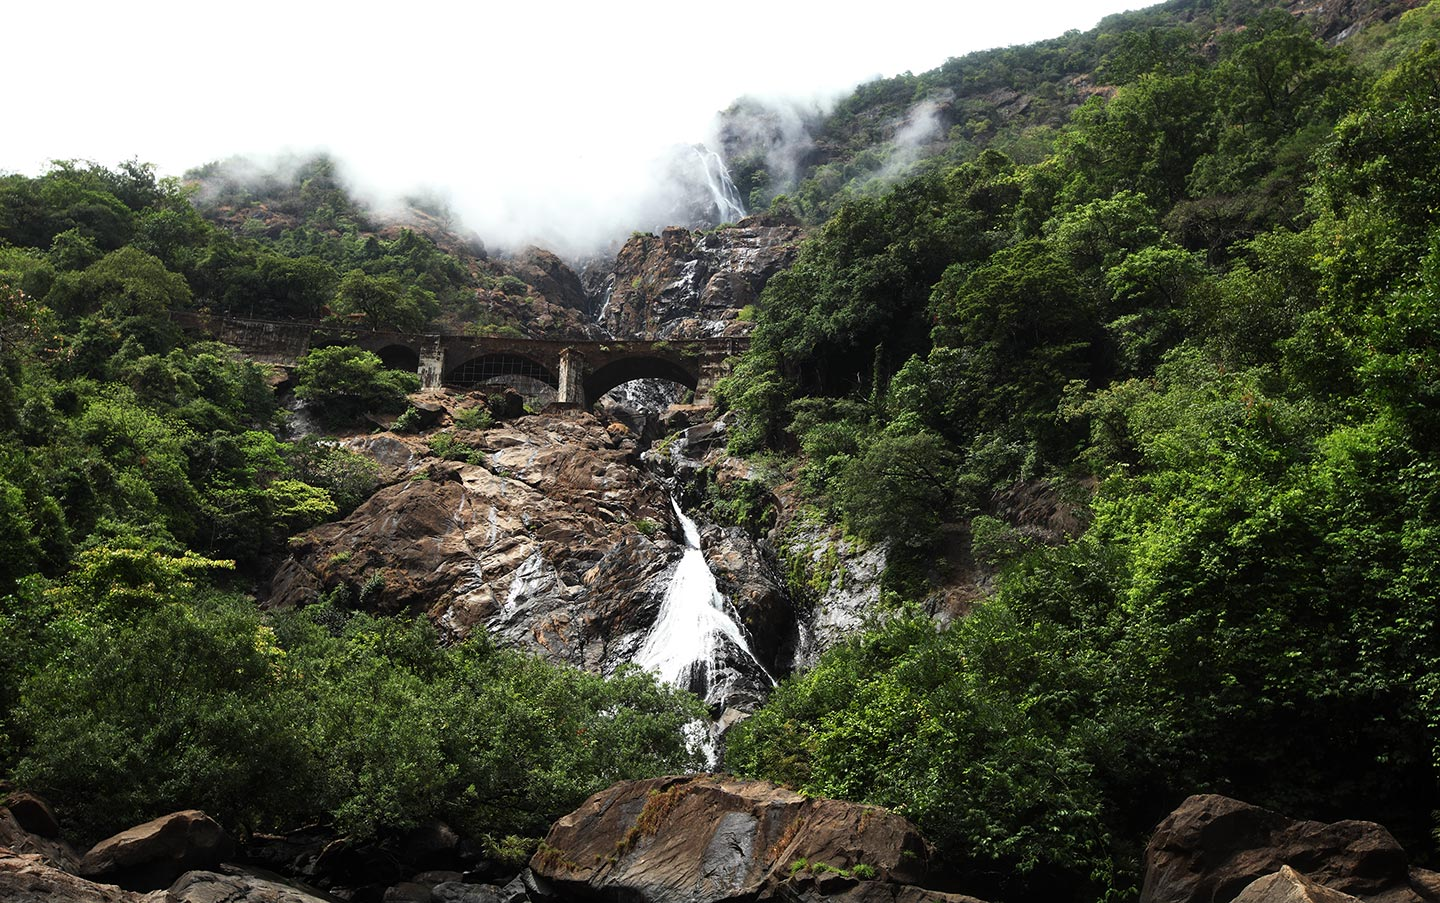 hard green forest of Dudhsagar Waterfalls, Goa